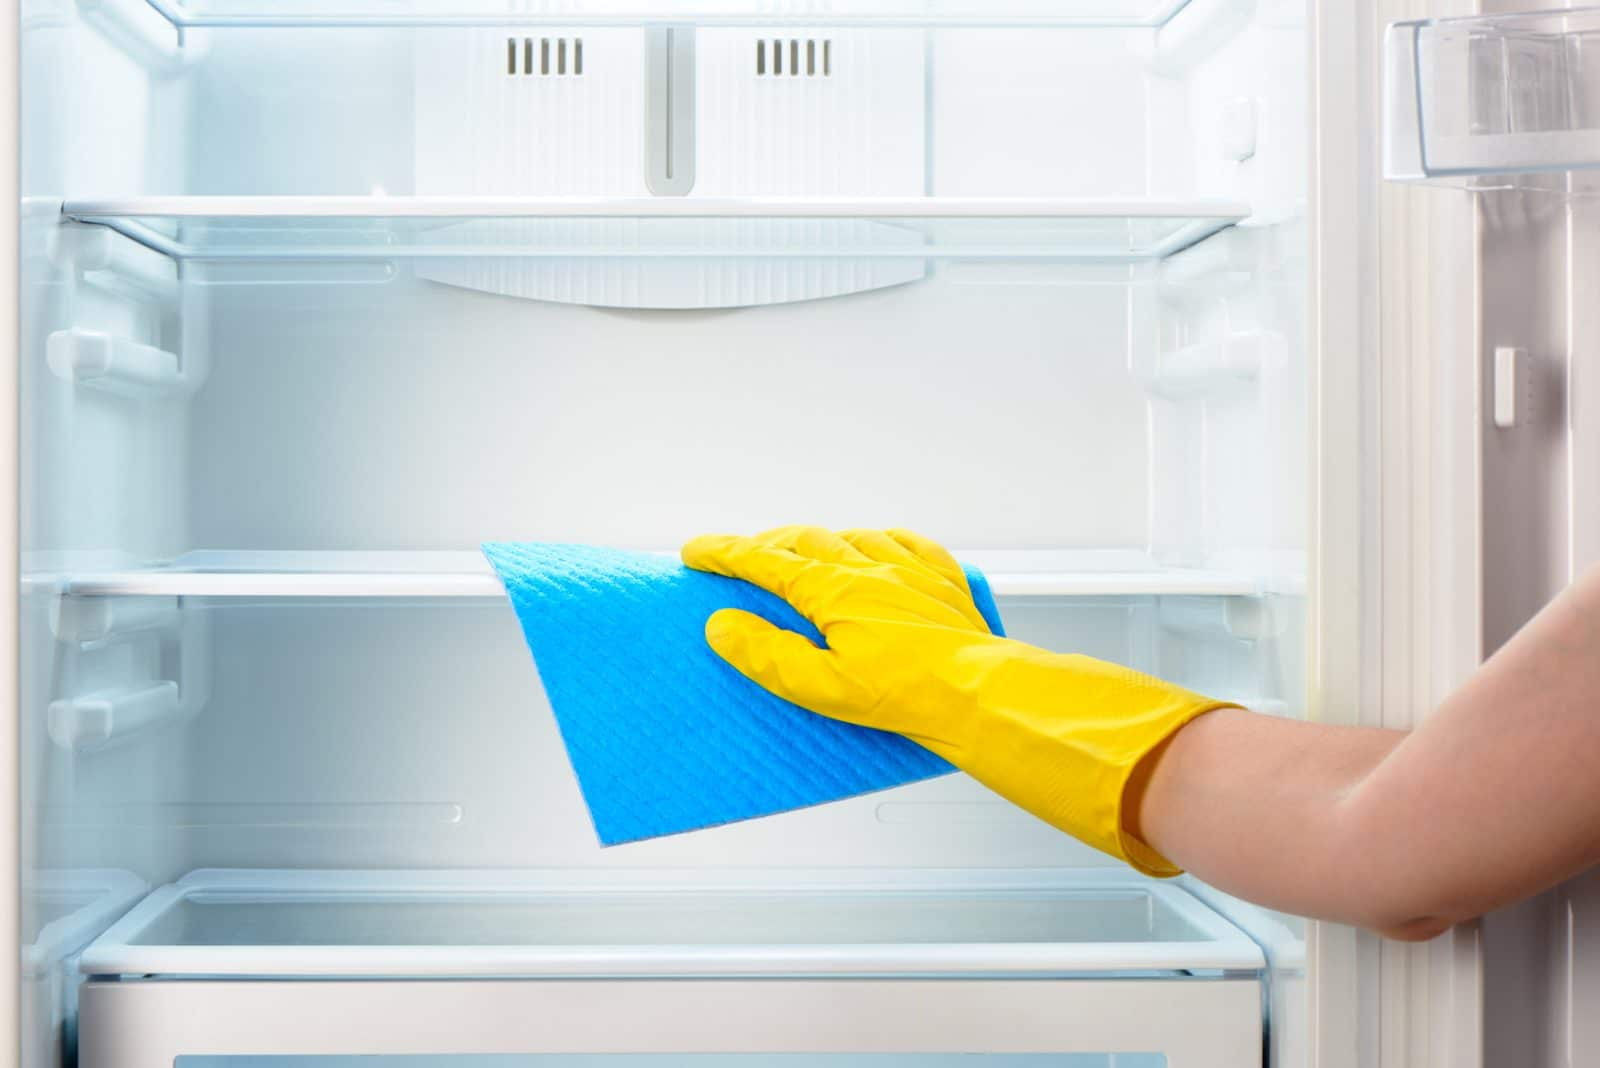 How to keep the kitchen clean and safe cuisine bank How long will spaghetti last in the refrigerator